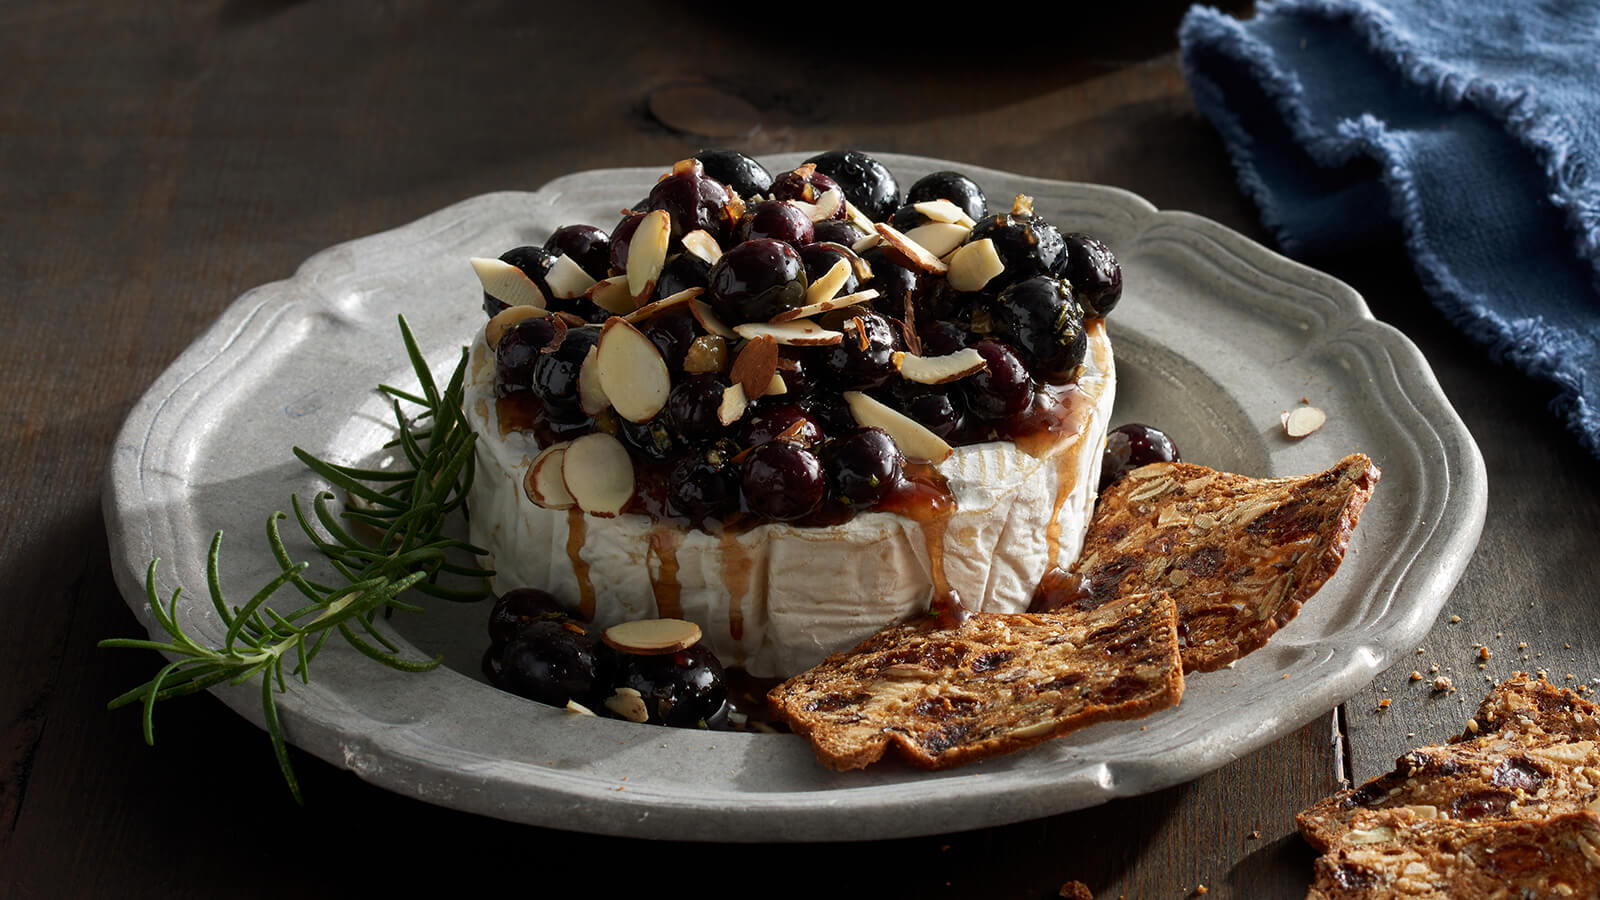 blueberry chutney over brie